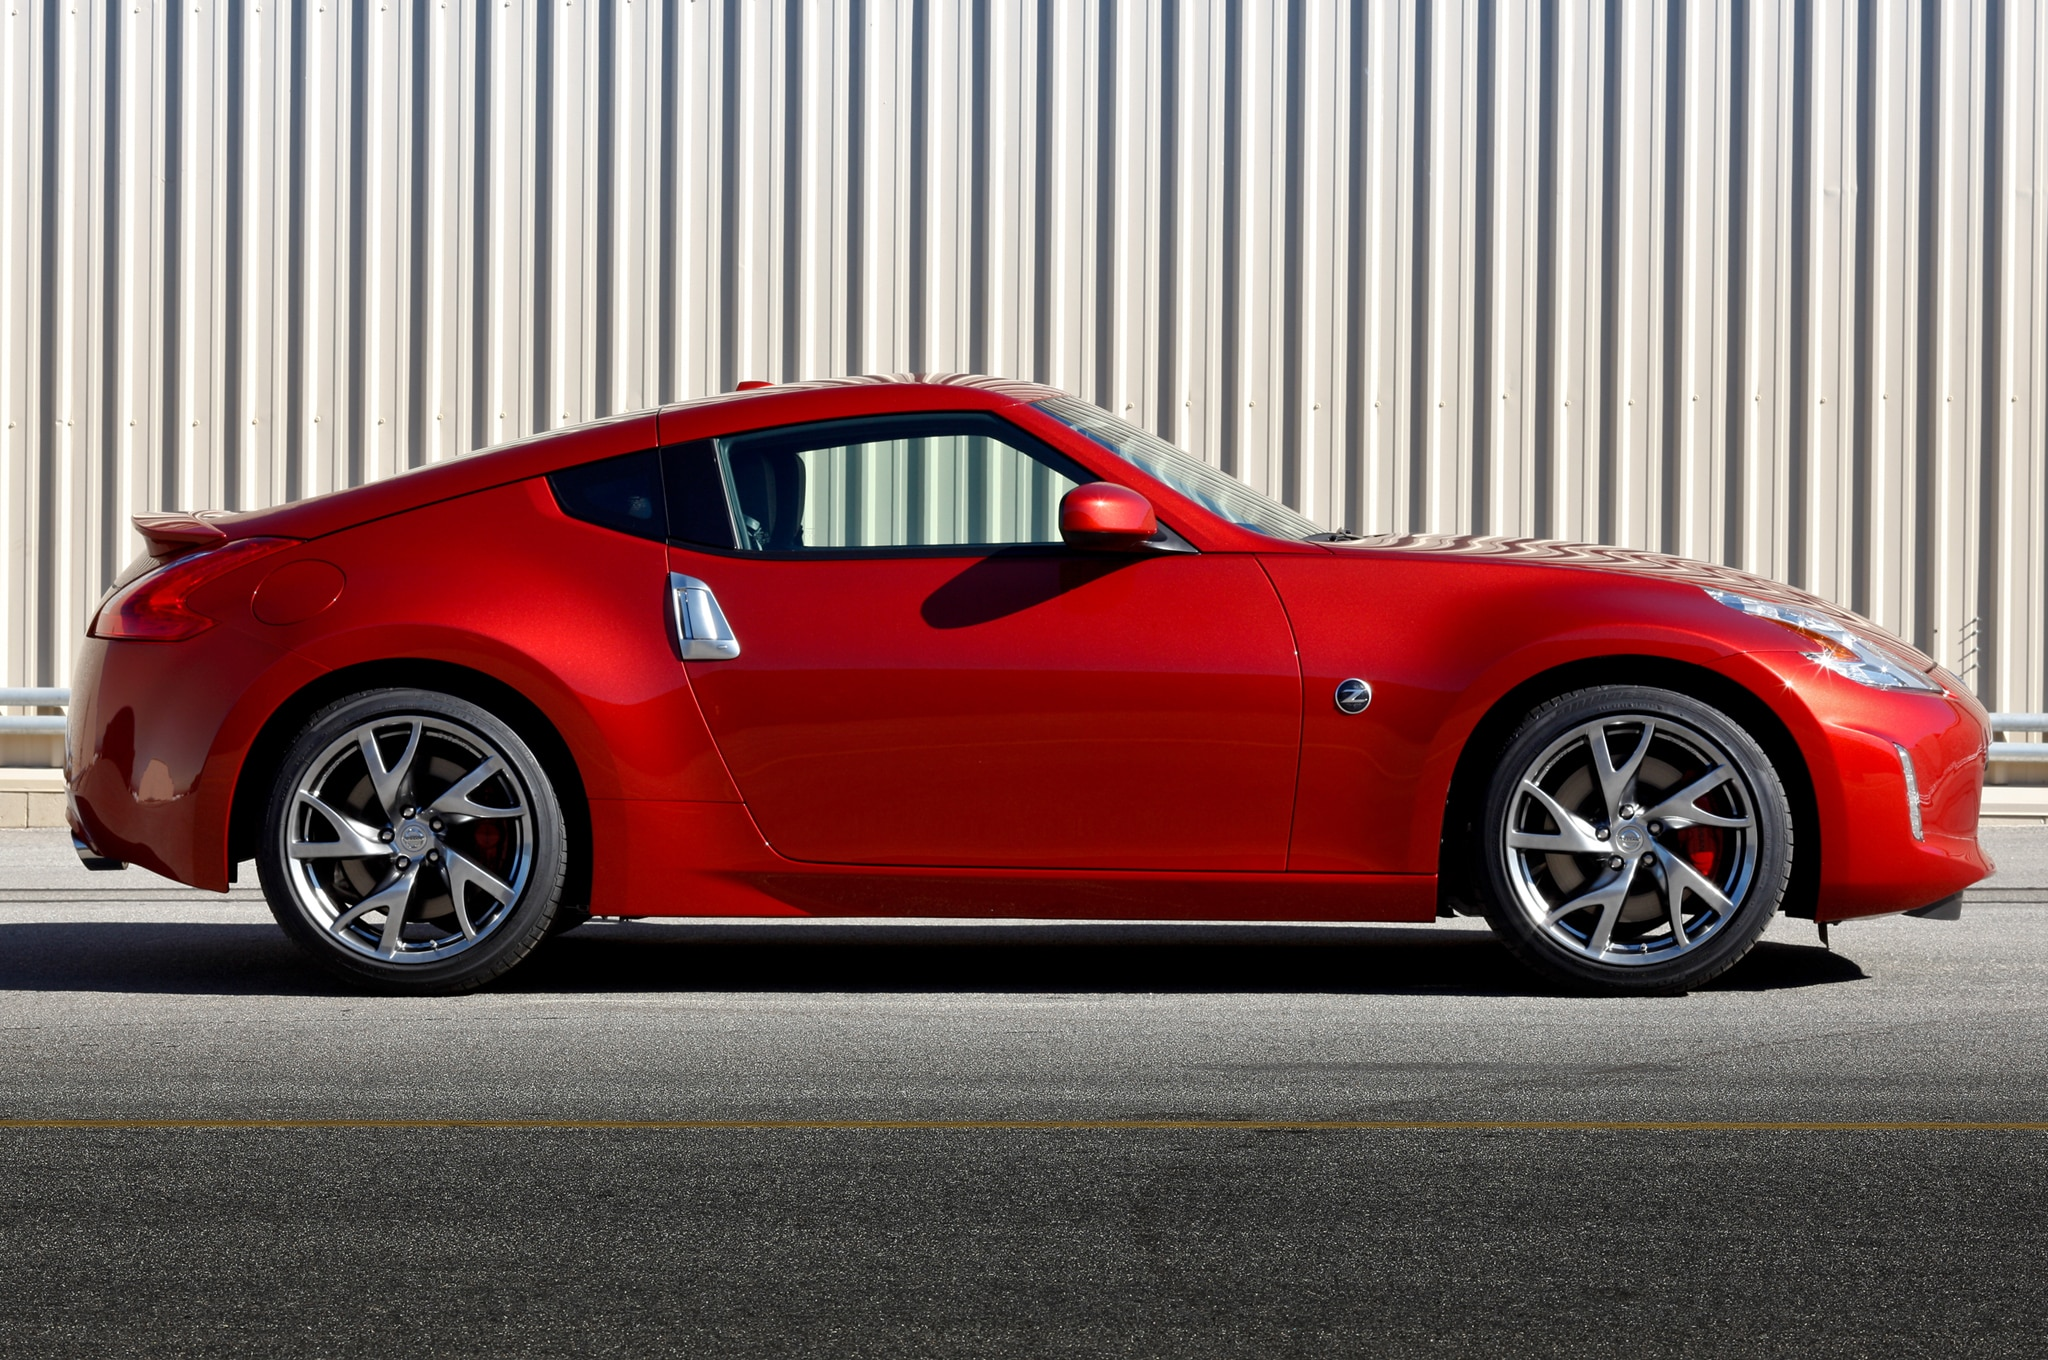 2014 nissan 370z price cut to 30 780. Black Bedroom Furniture Sets. Home Design Ideas